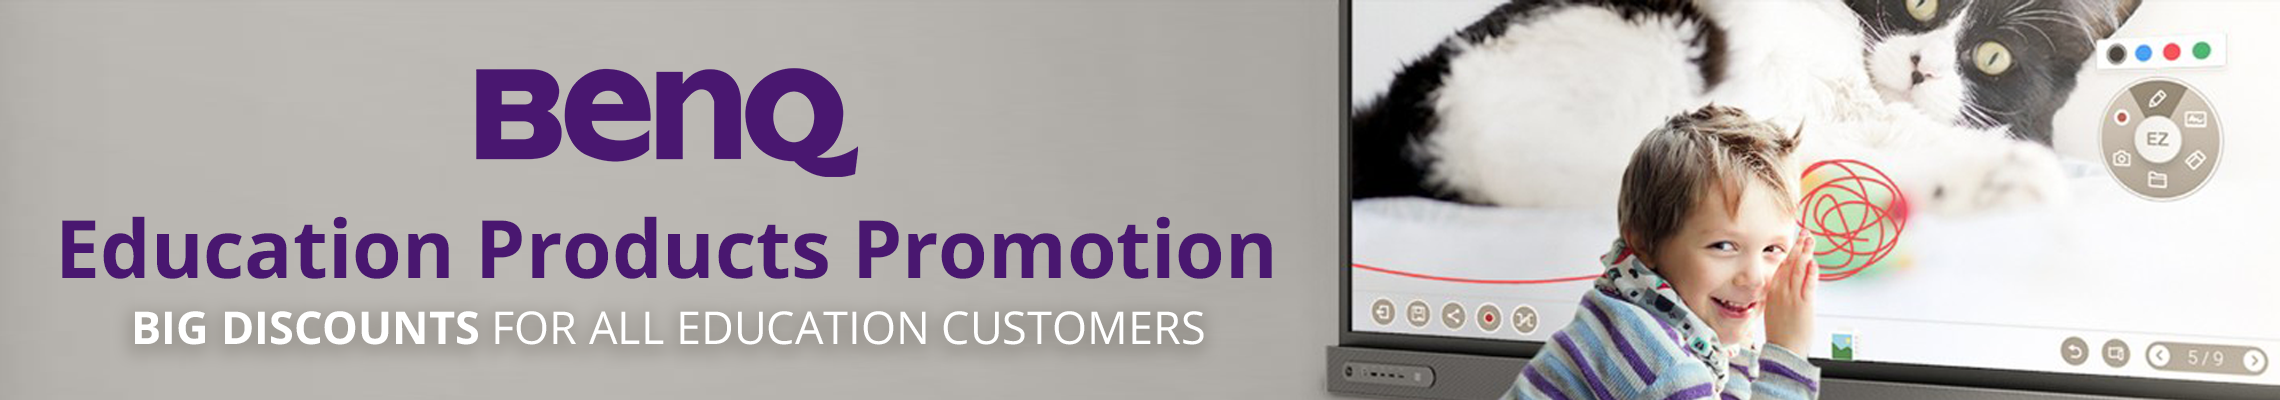 BenQ Education Promotion